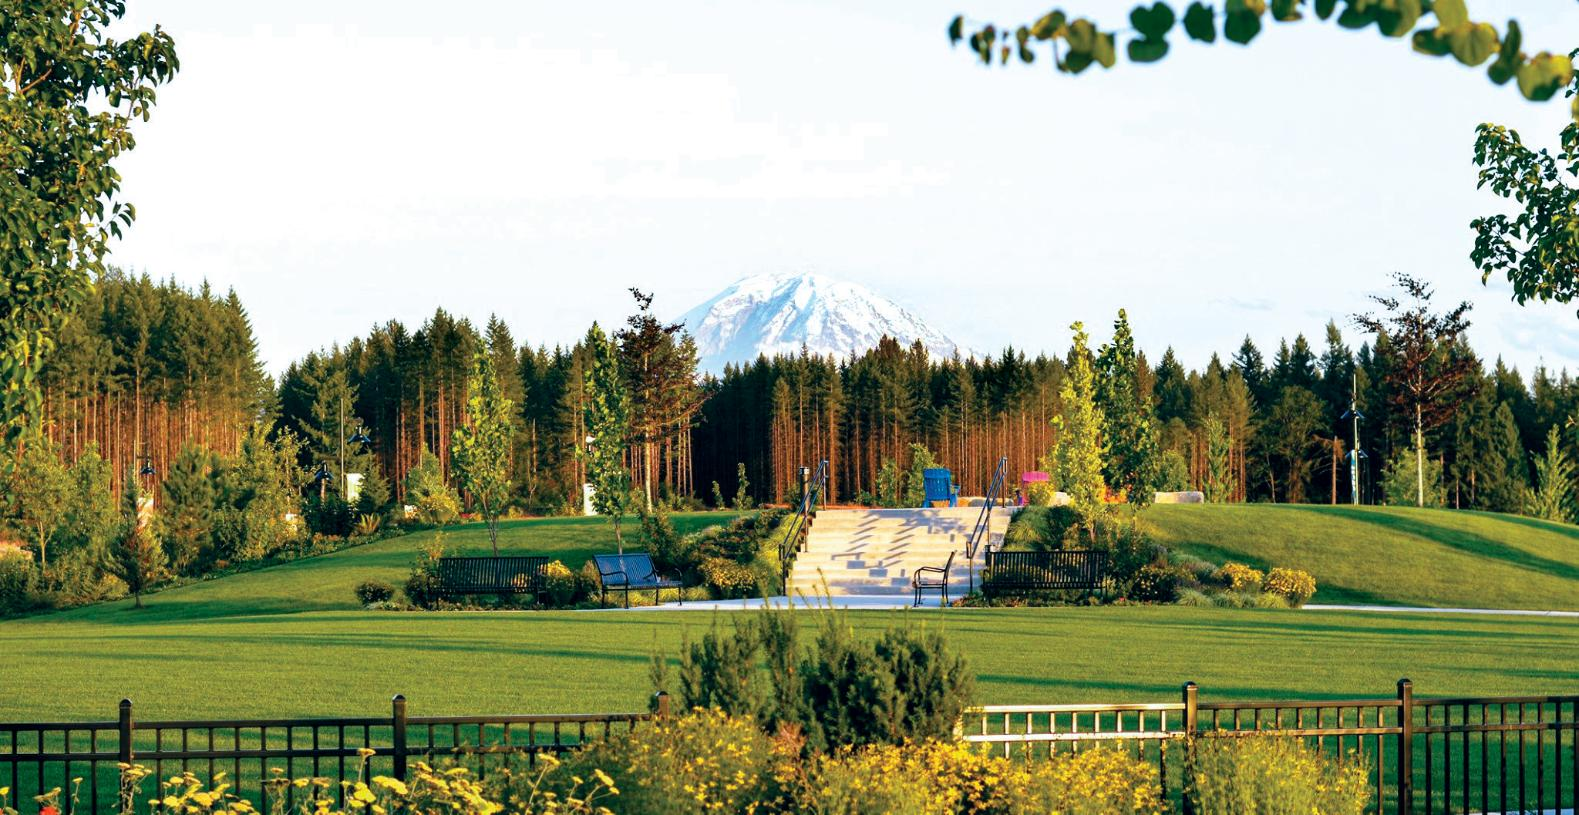 The Village Green and Mount Rainer